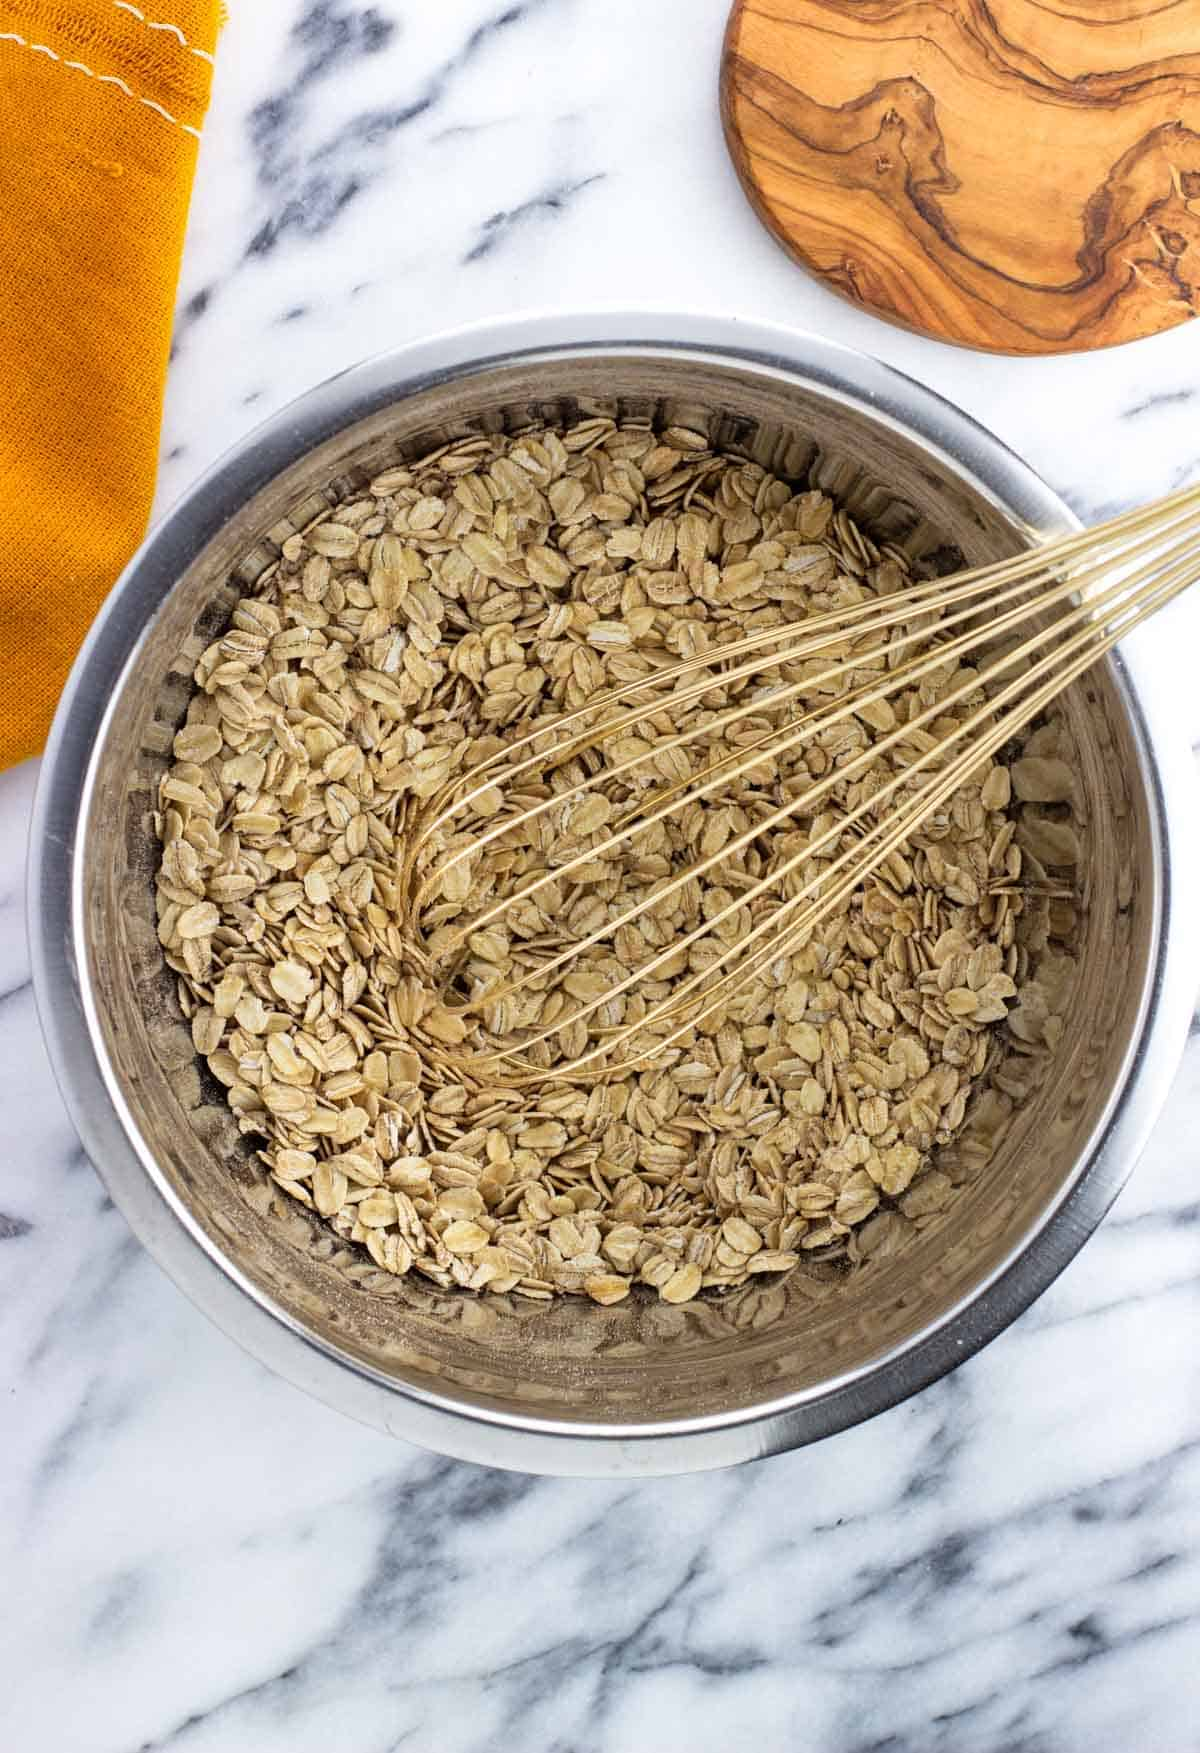 Dry ingredients combined in a bowl with a whisk.